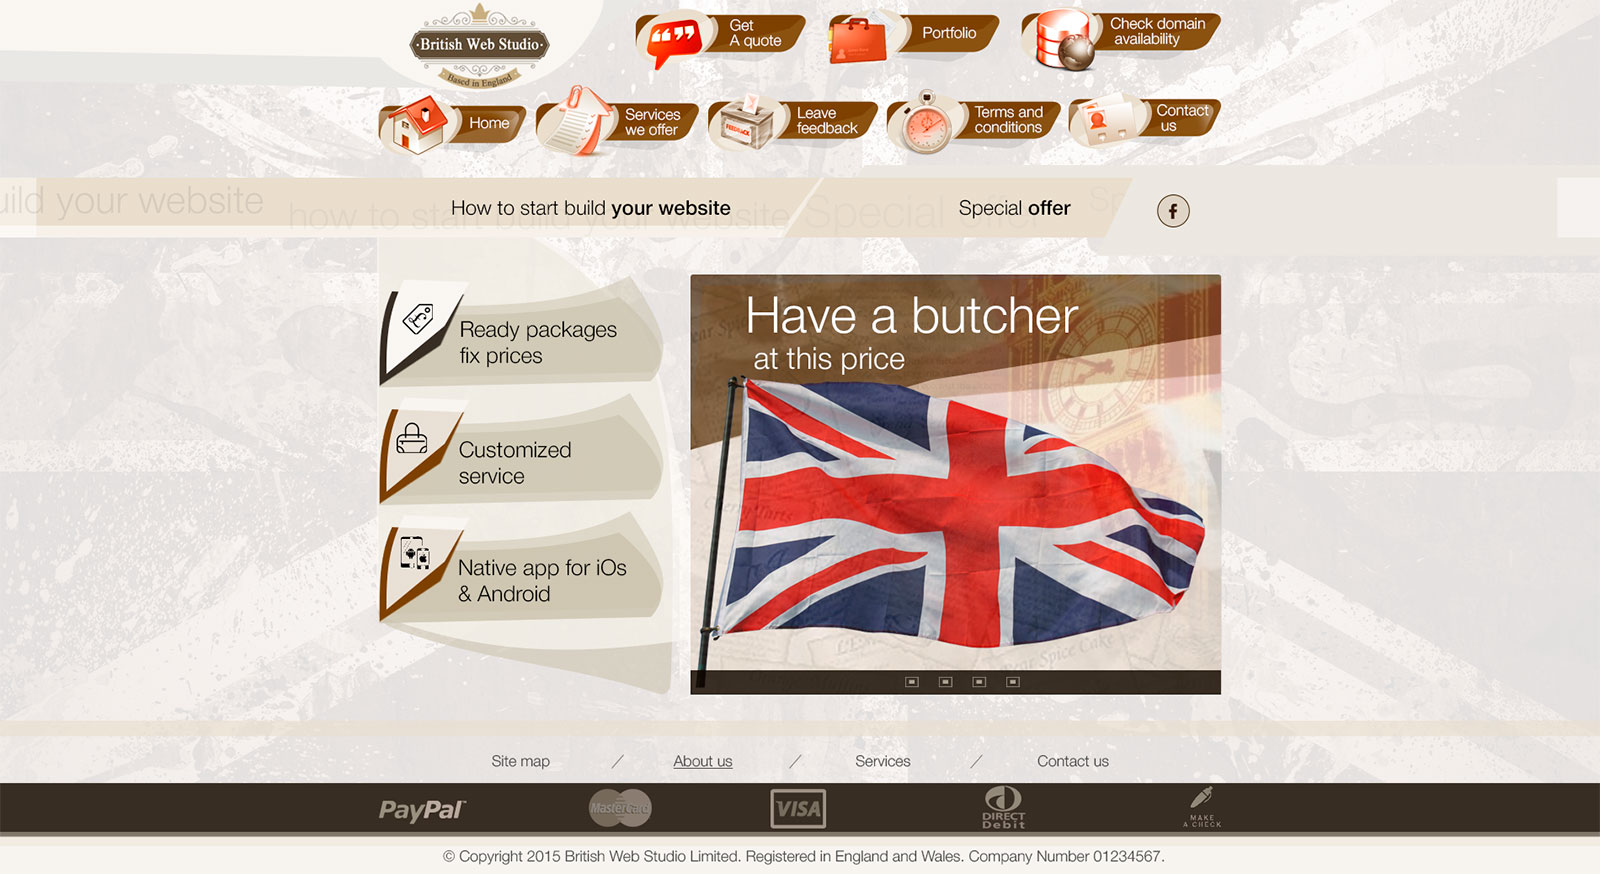 British Web Studio